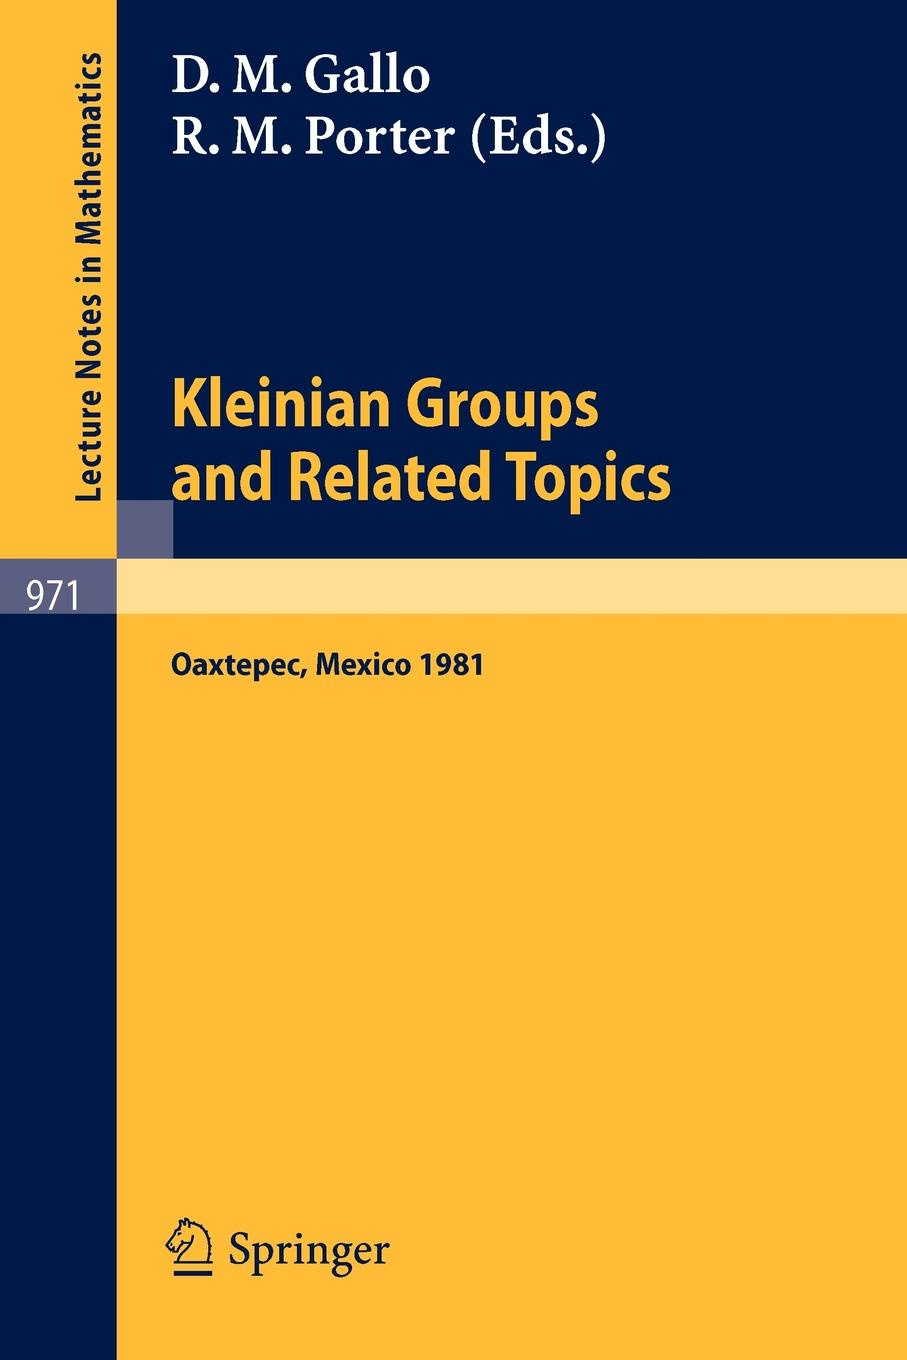 Kleinian Groups and Related Topics. Proceedings of the Workshop Held at Oaxtepec, Mexico, August 10-14, 1981 proceedings of the v legislative xml workshop